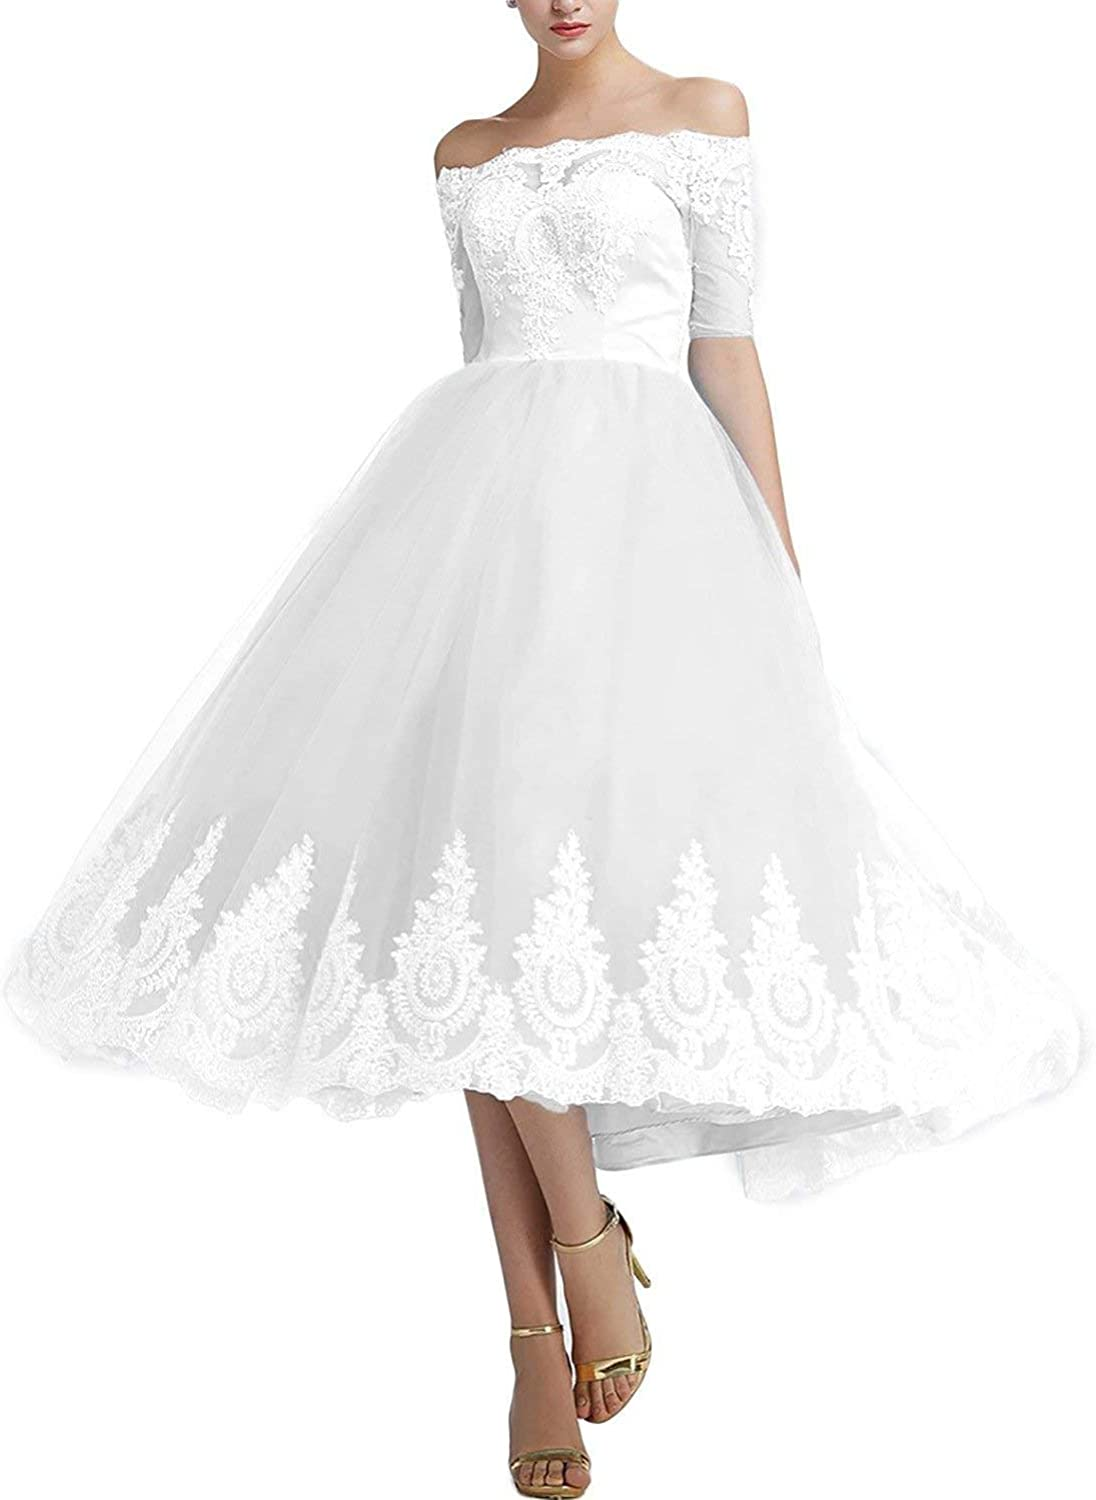 Jdress Women's Women's Off Shoulder Tea Length Cocktail Party Dress Lace Wedding Gown